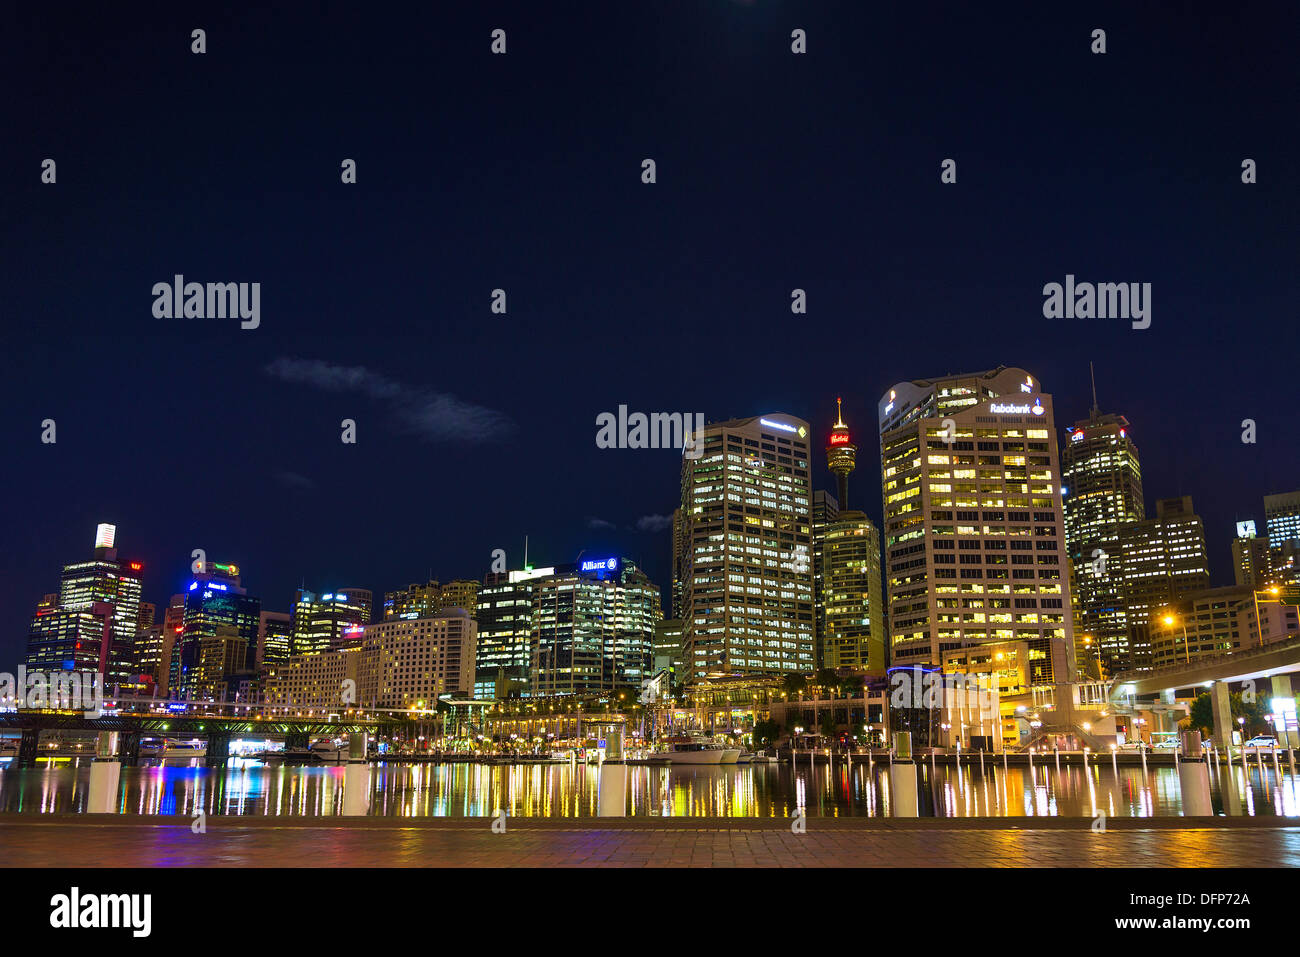 Toits de Darling Harbour à Sydney Australie Photo Stock